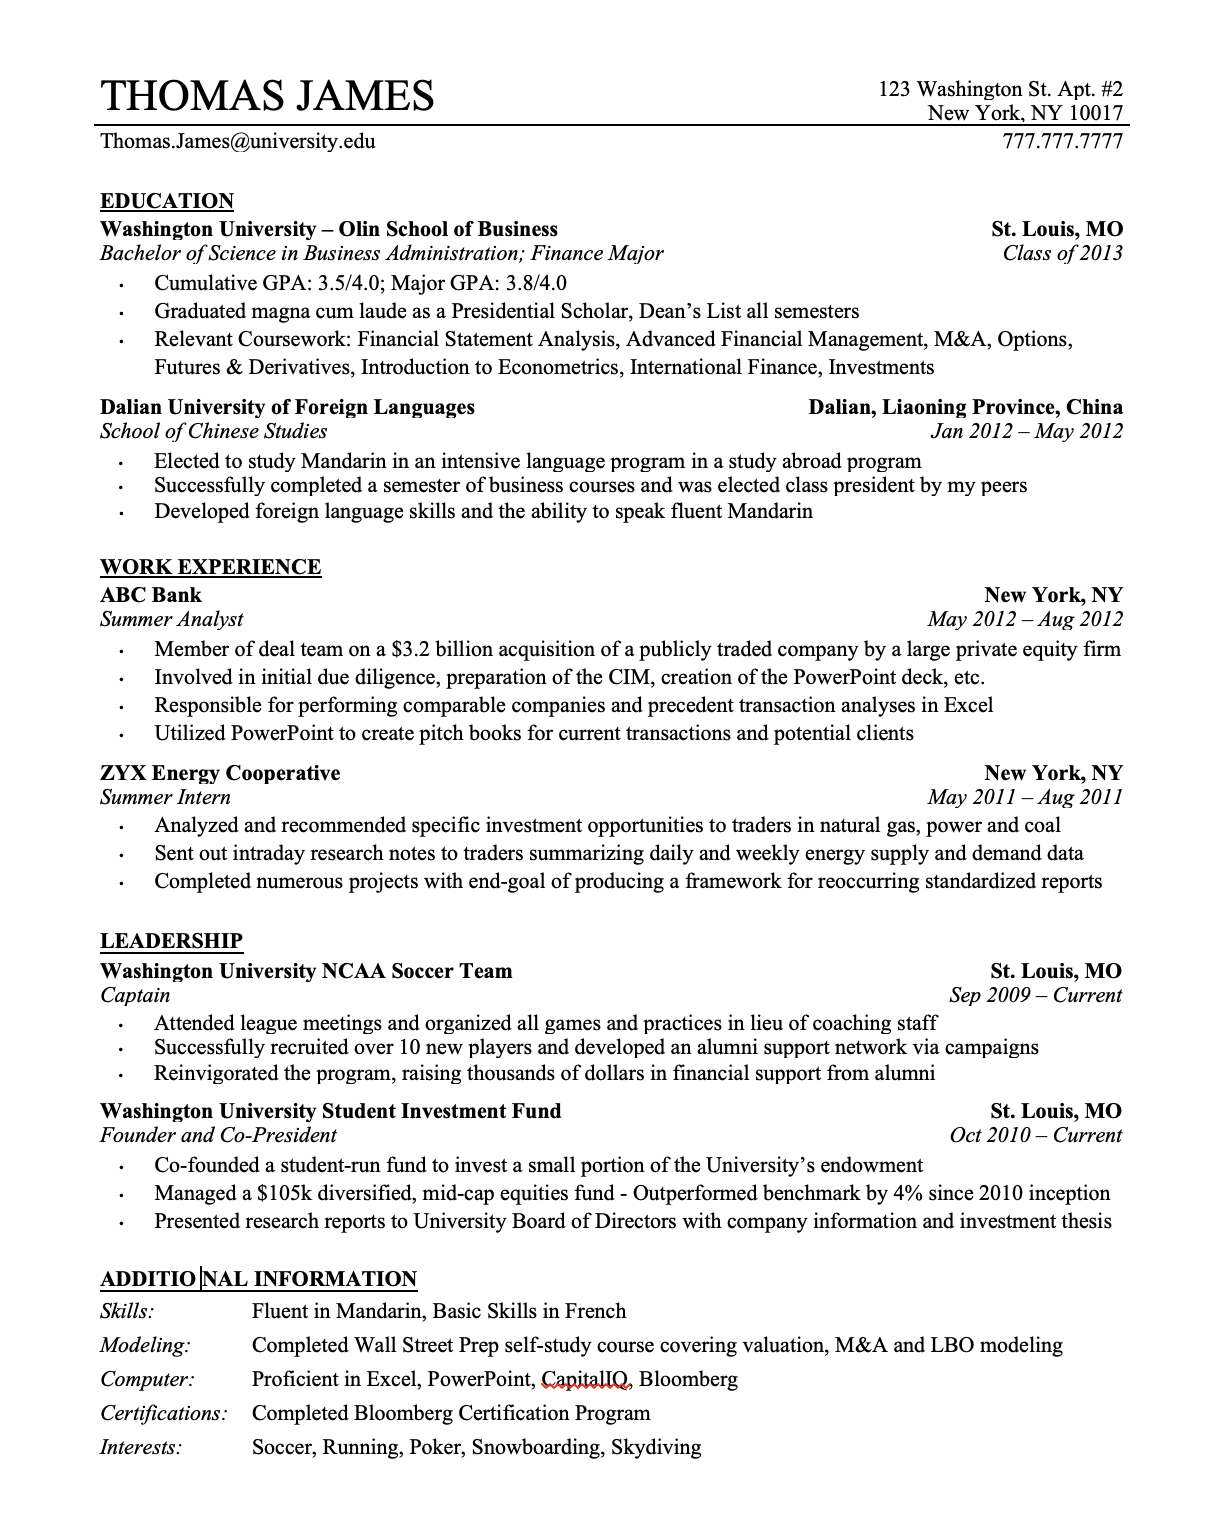 Traditional CV Example from wallstreetoasis.com